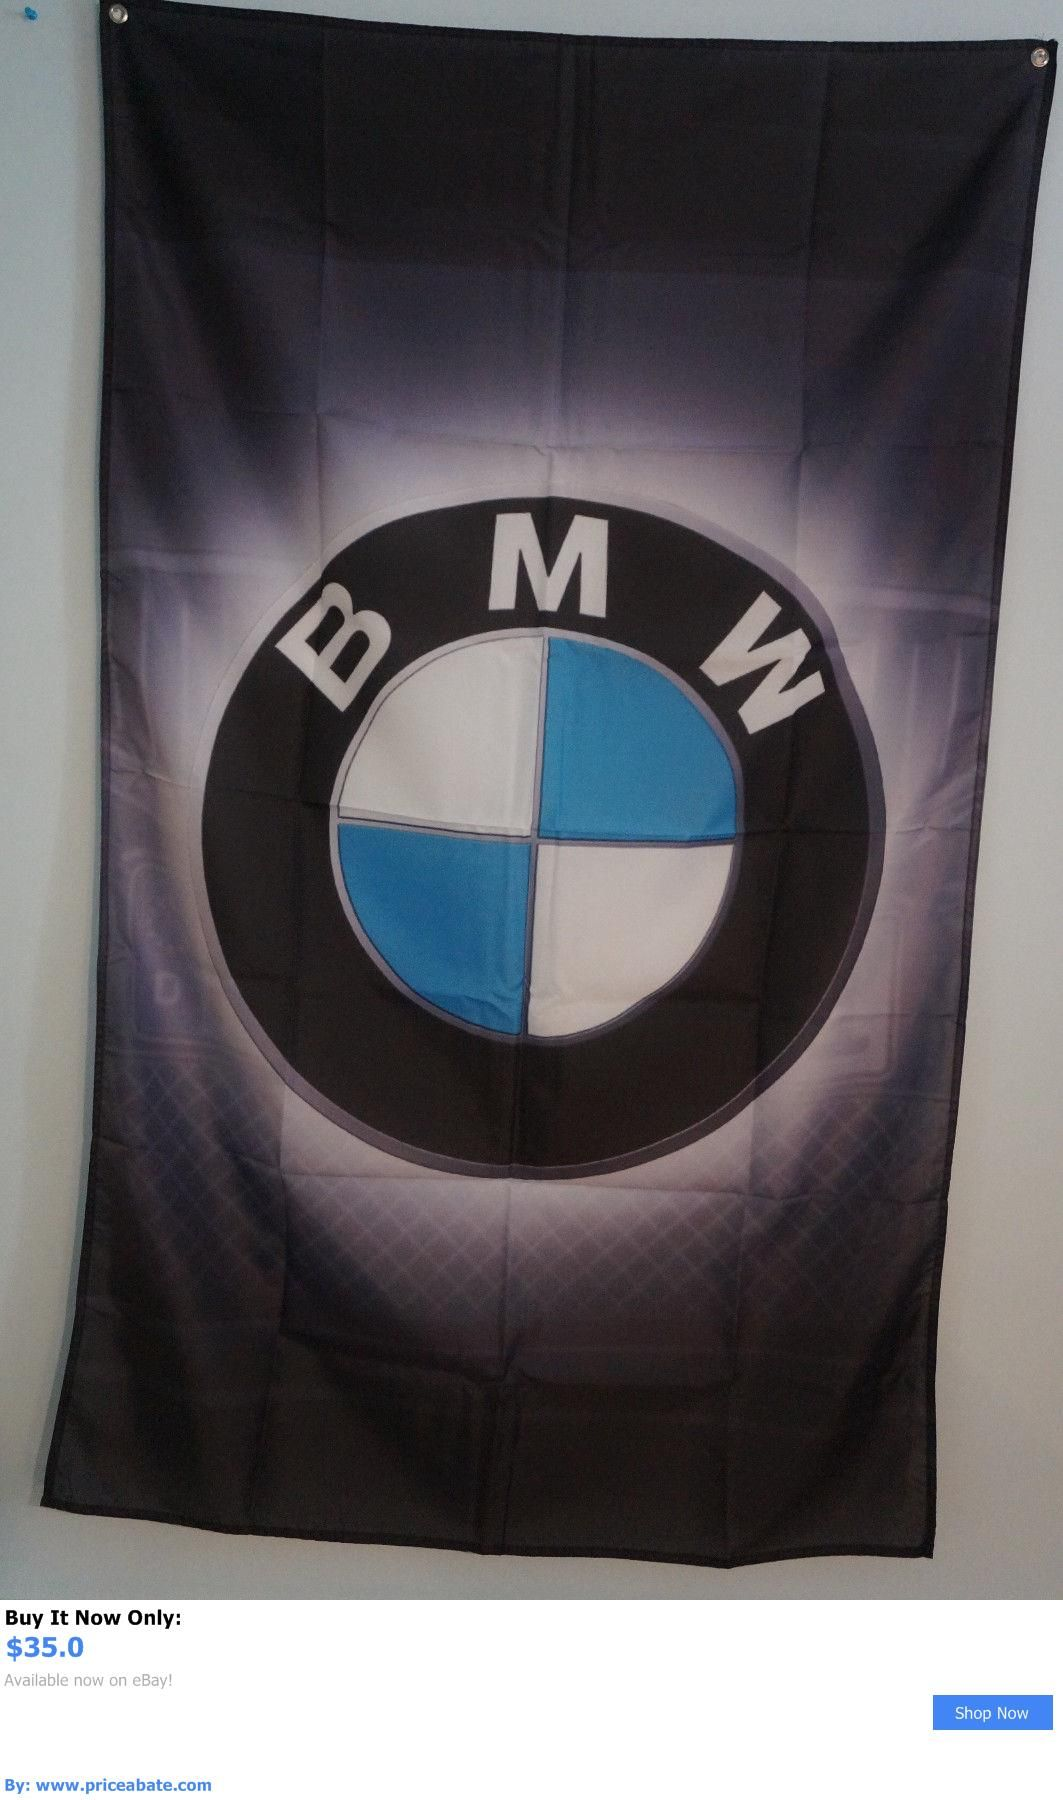 Luxury Cars Bmw Logo Luxury Cars Flag Banner Man Cave Garage 3x5 Feet Buy It Now Only 35 0 Priceabateluxurycars Or Priceabate Bmw Luxury Cars Bmw Logo